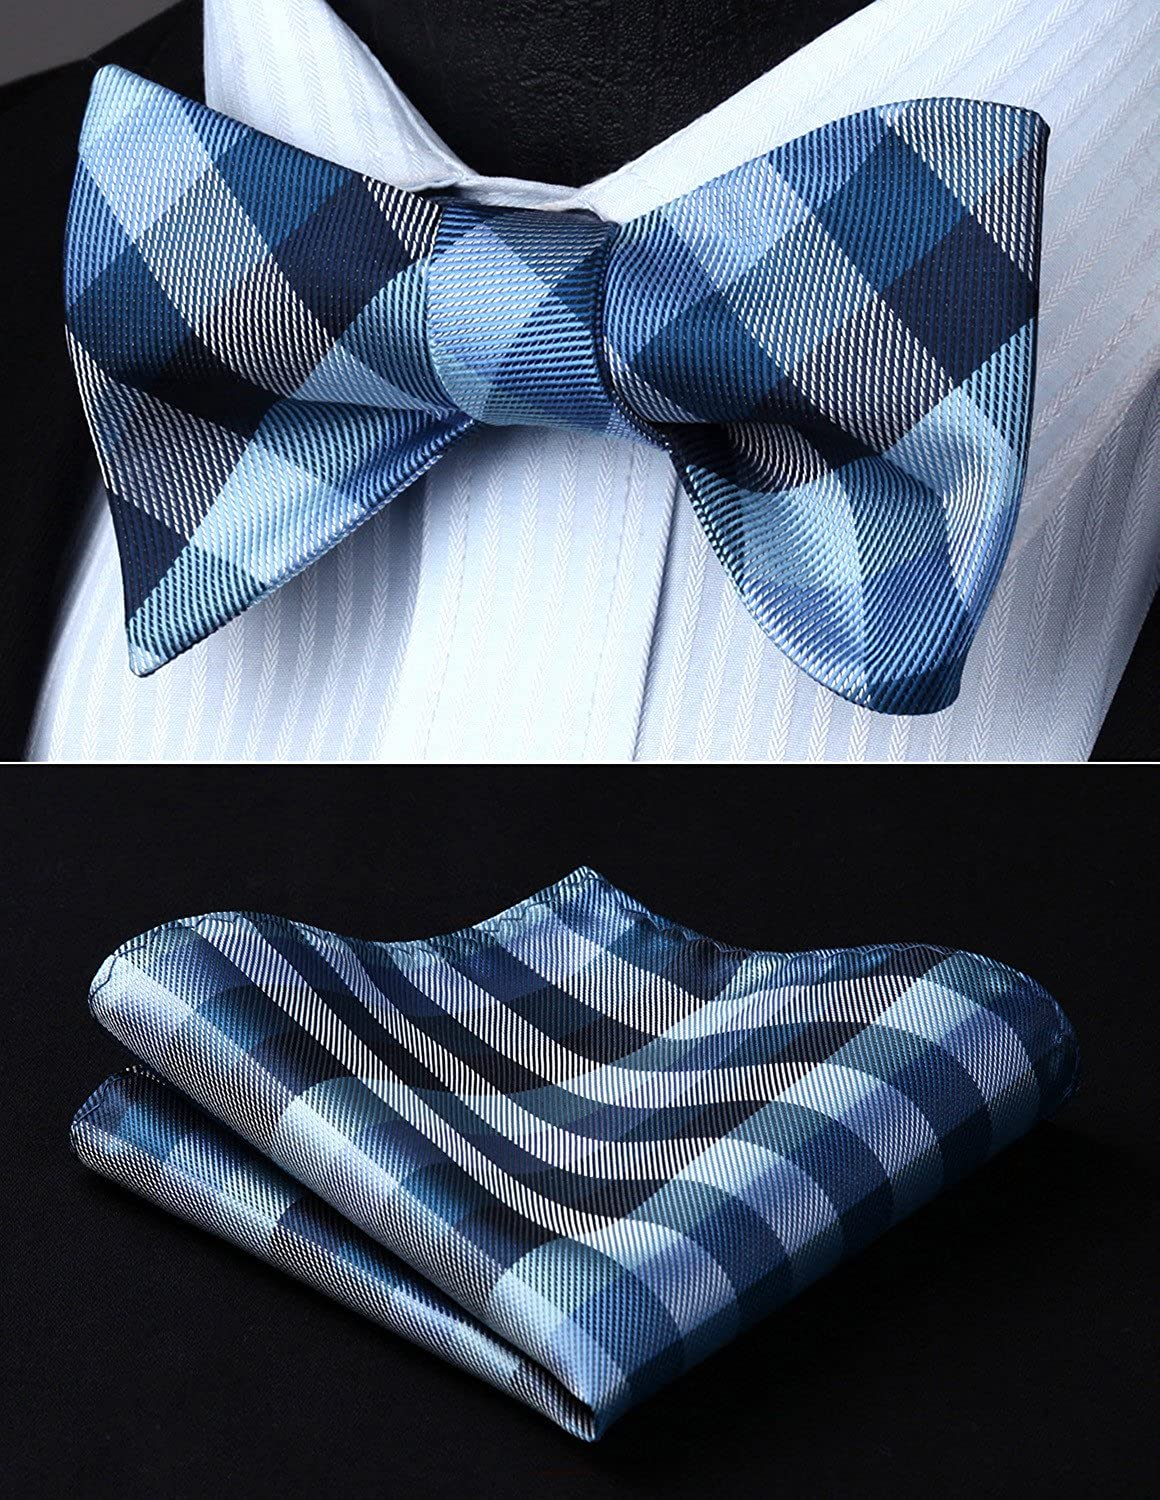 HISDERN Check Dots 6 Clips Suspenders /& Bow Tie and Pocket Square Set Y Shape Adjustable Braces